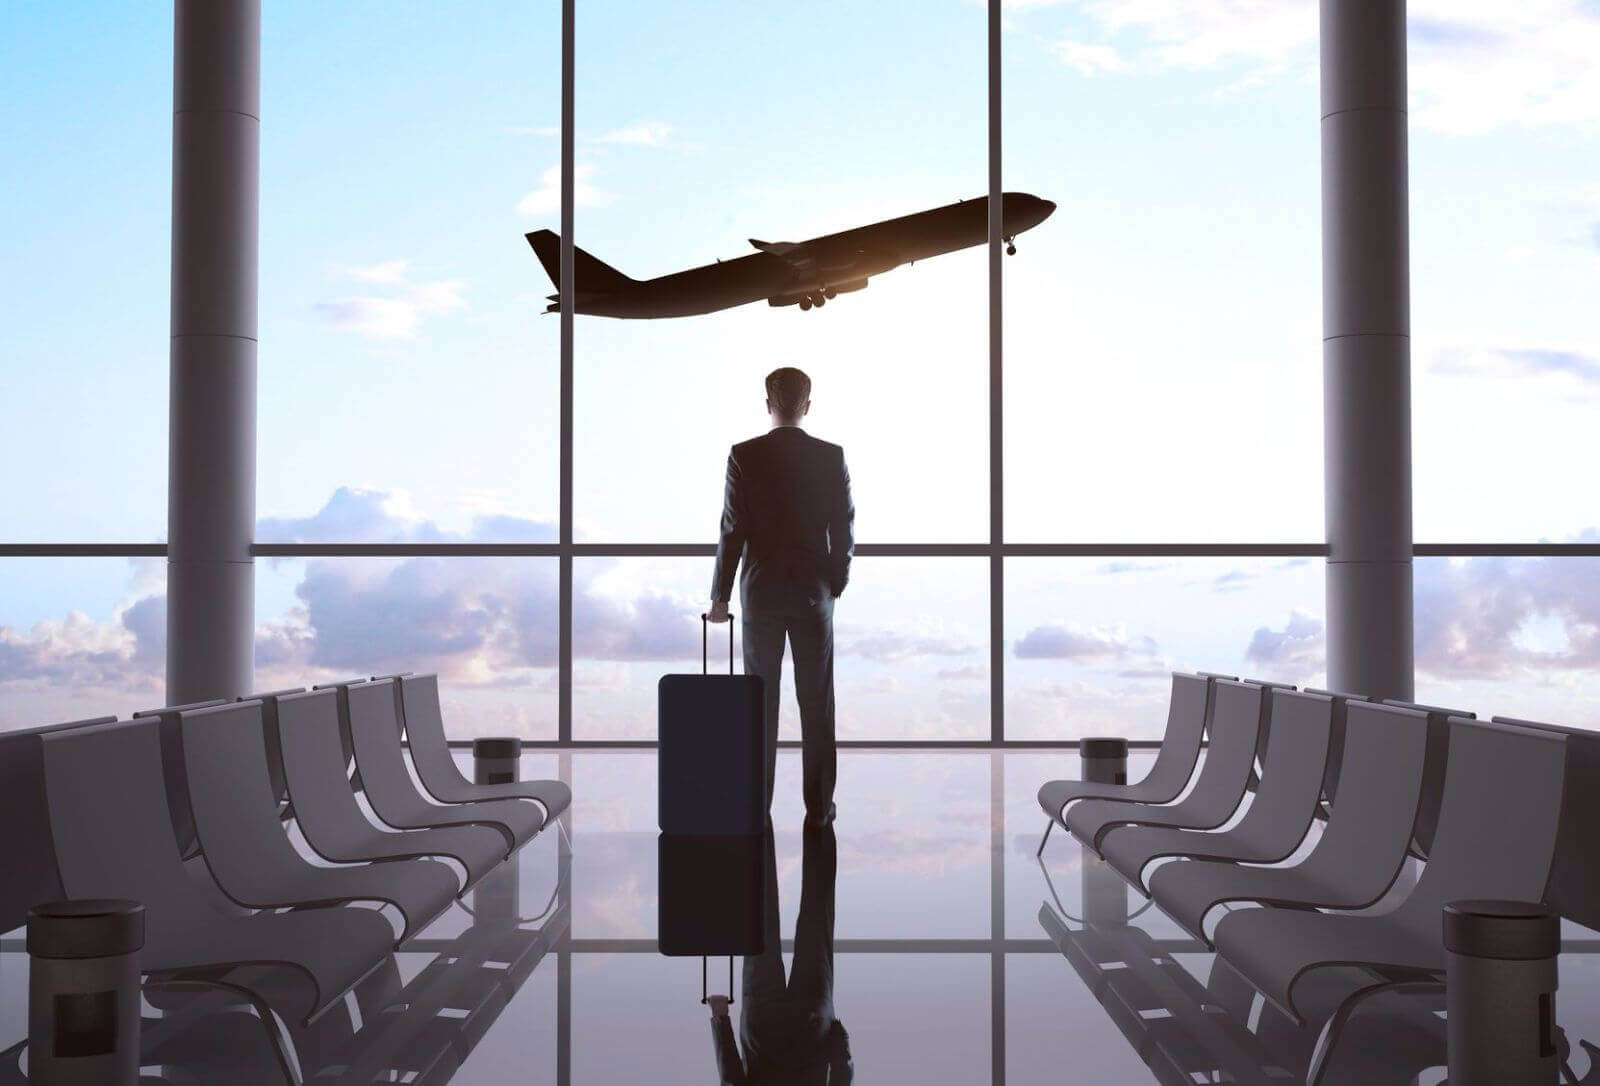 man watching an airplane take off from the airport terminal